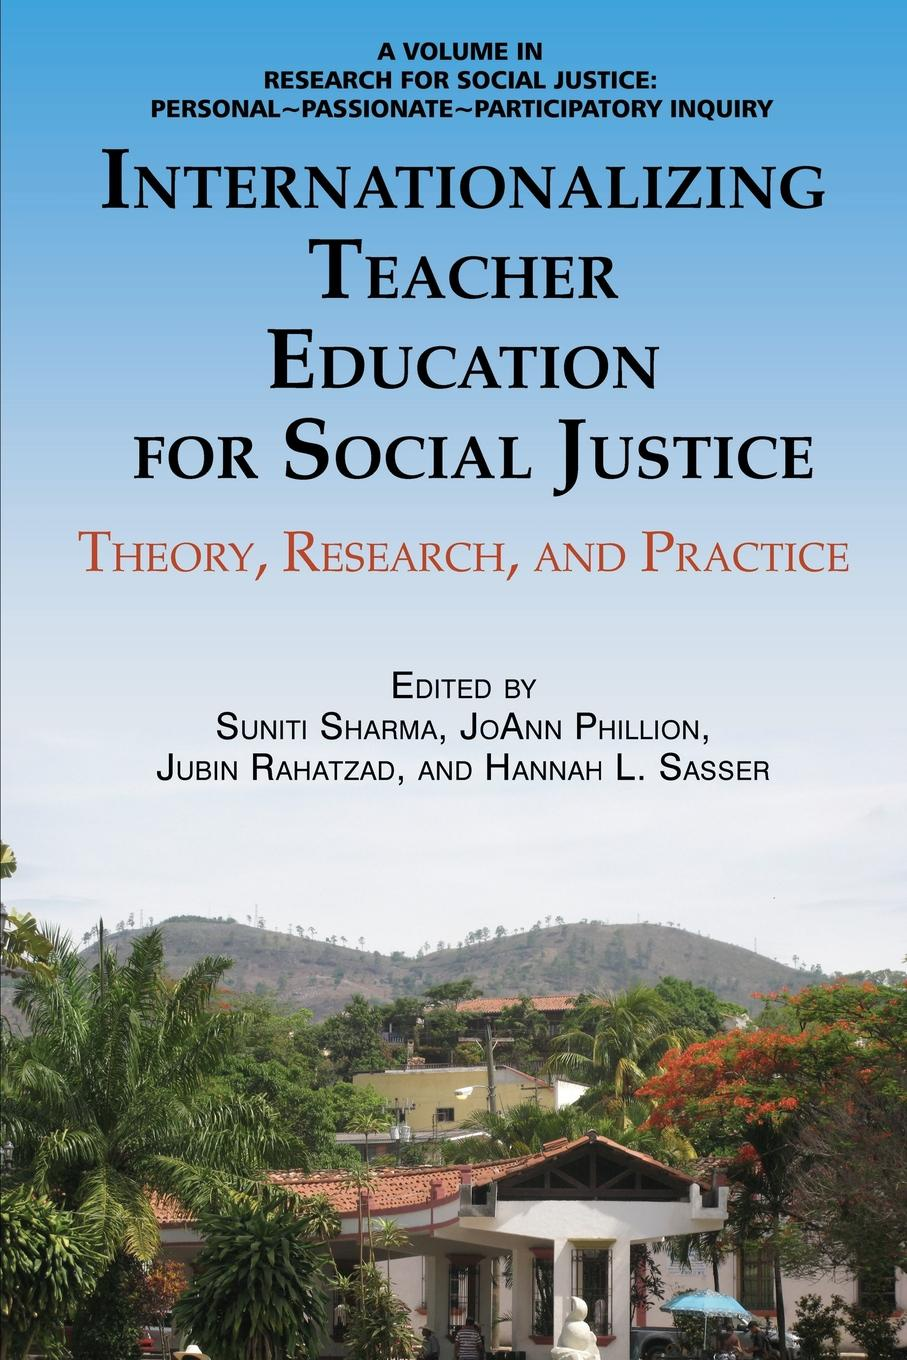 Internationalizing Teacher Education for Social Justice. Theory, Research, and Practice john k rhoads critical issues in social theory